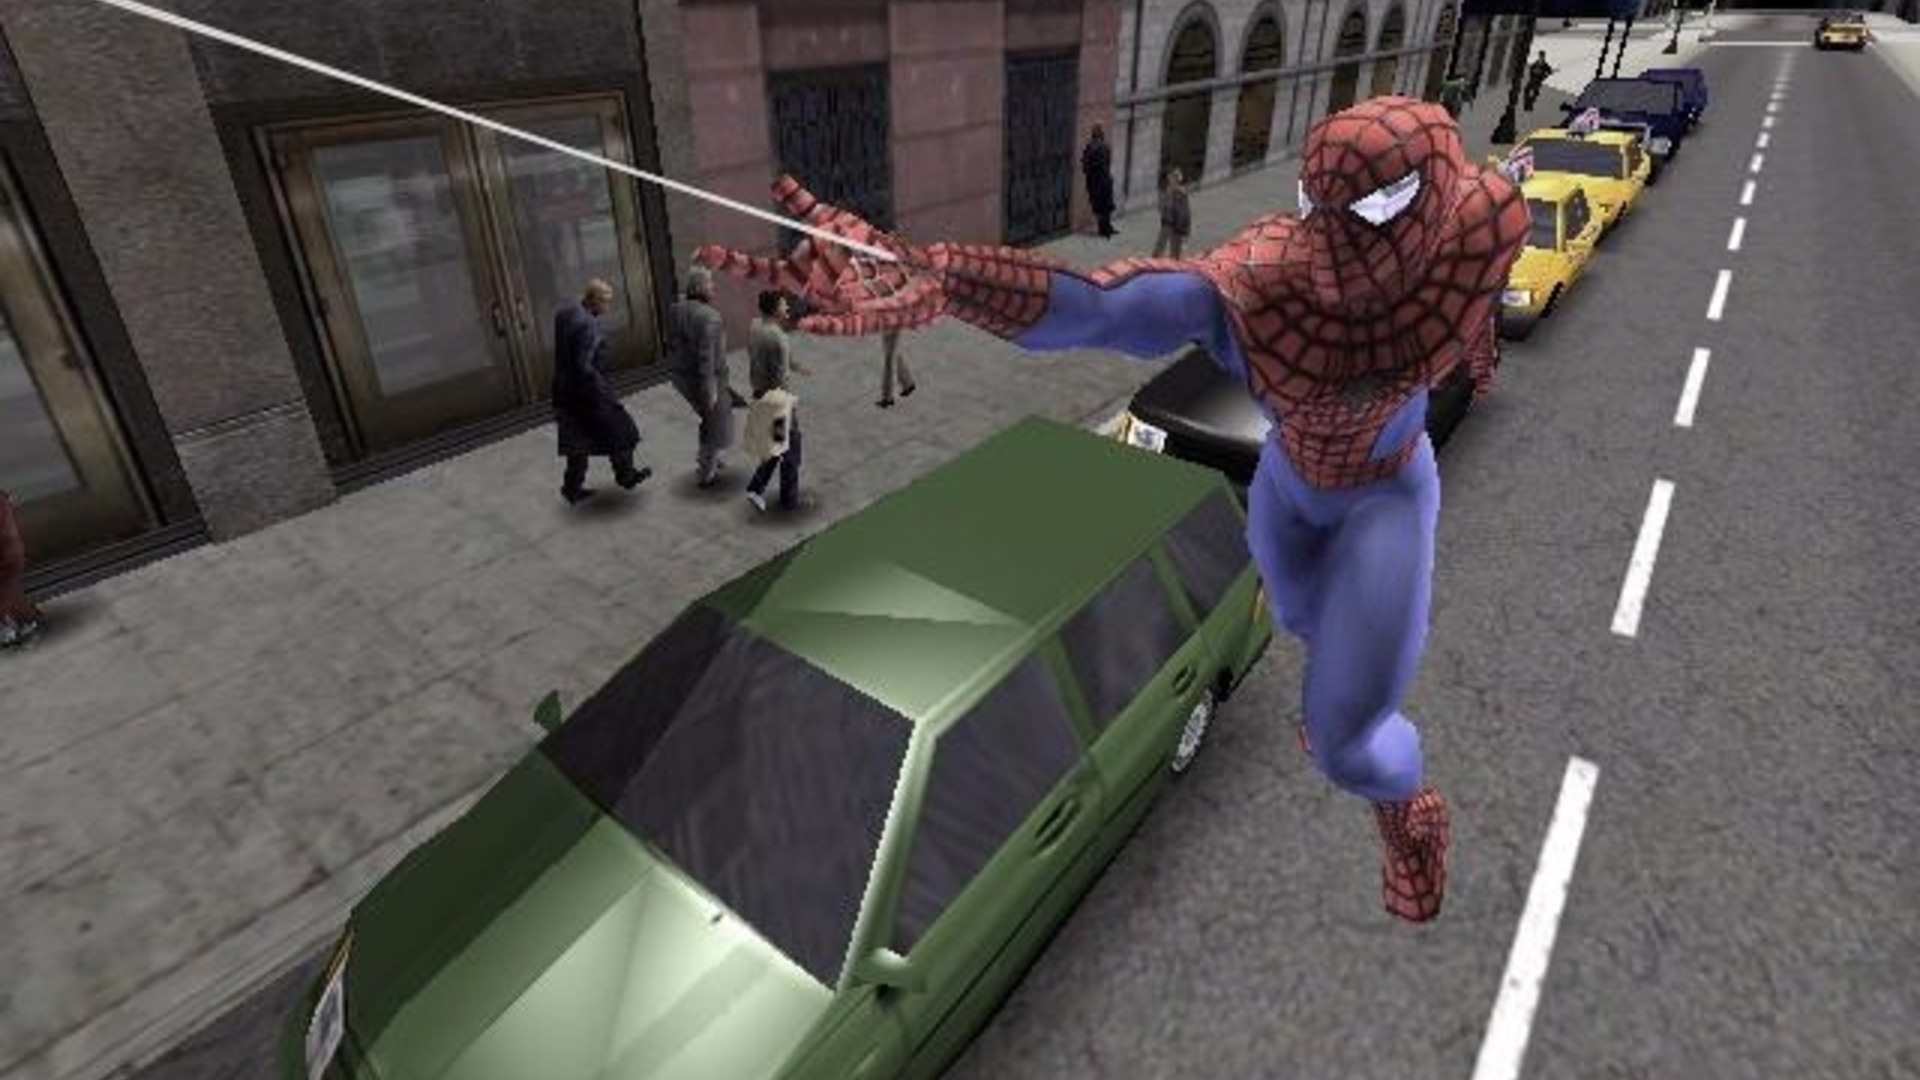 13 years later, spider-man 2's swinging has never been bettered